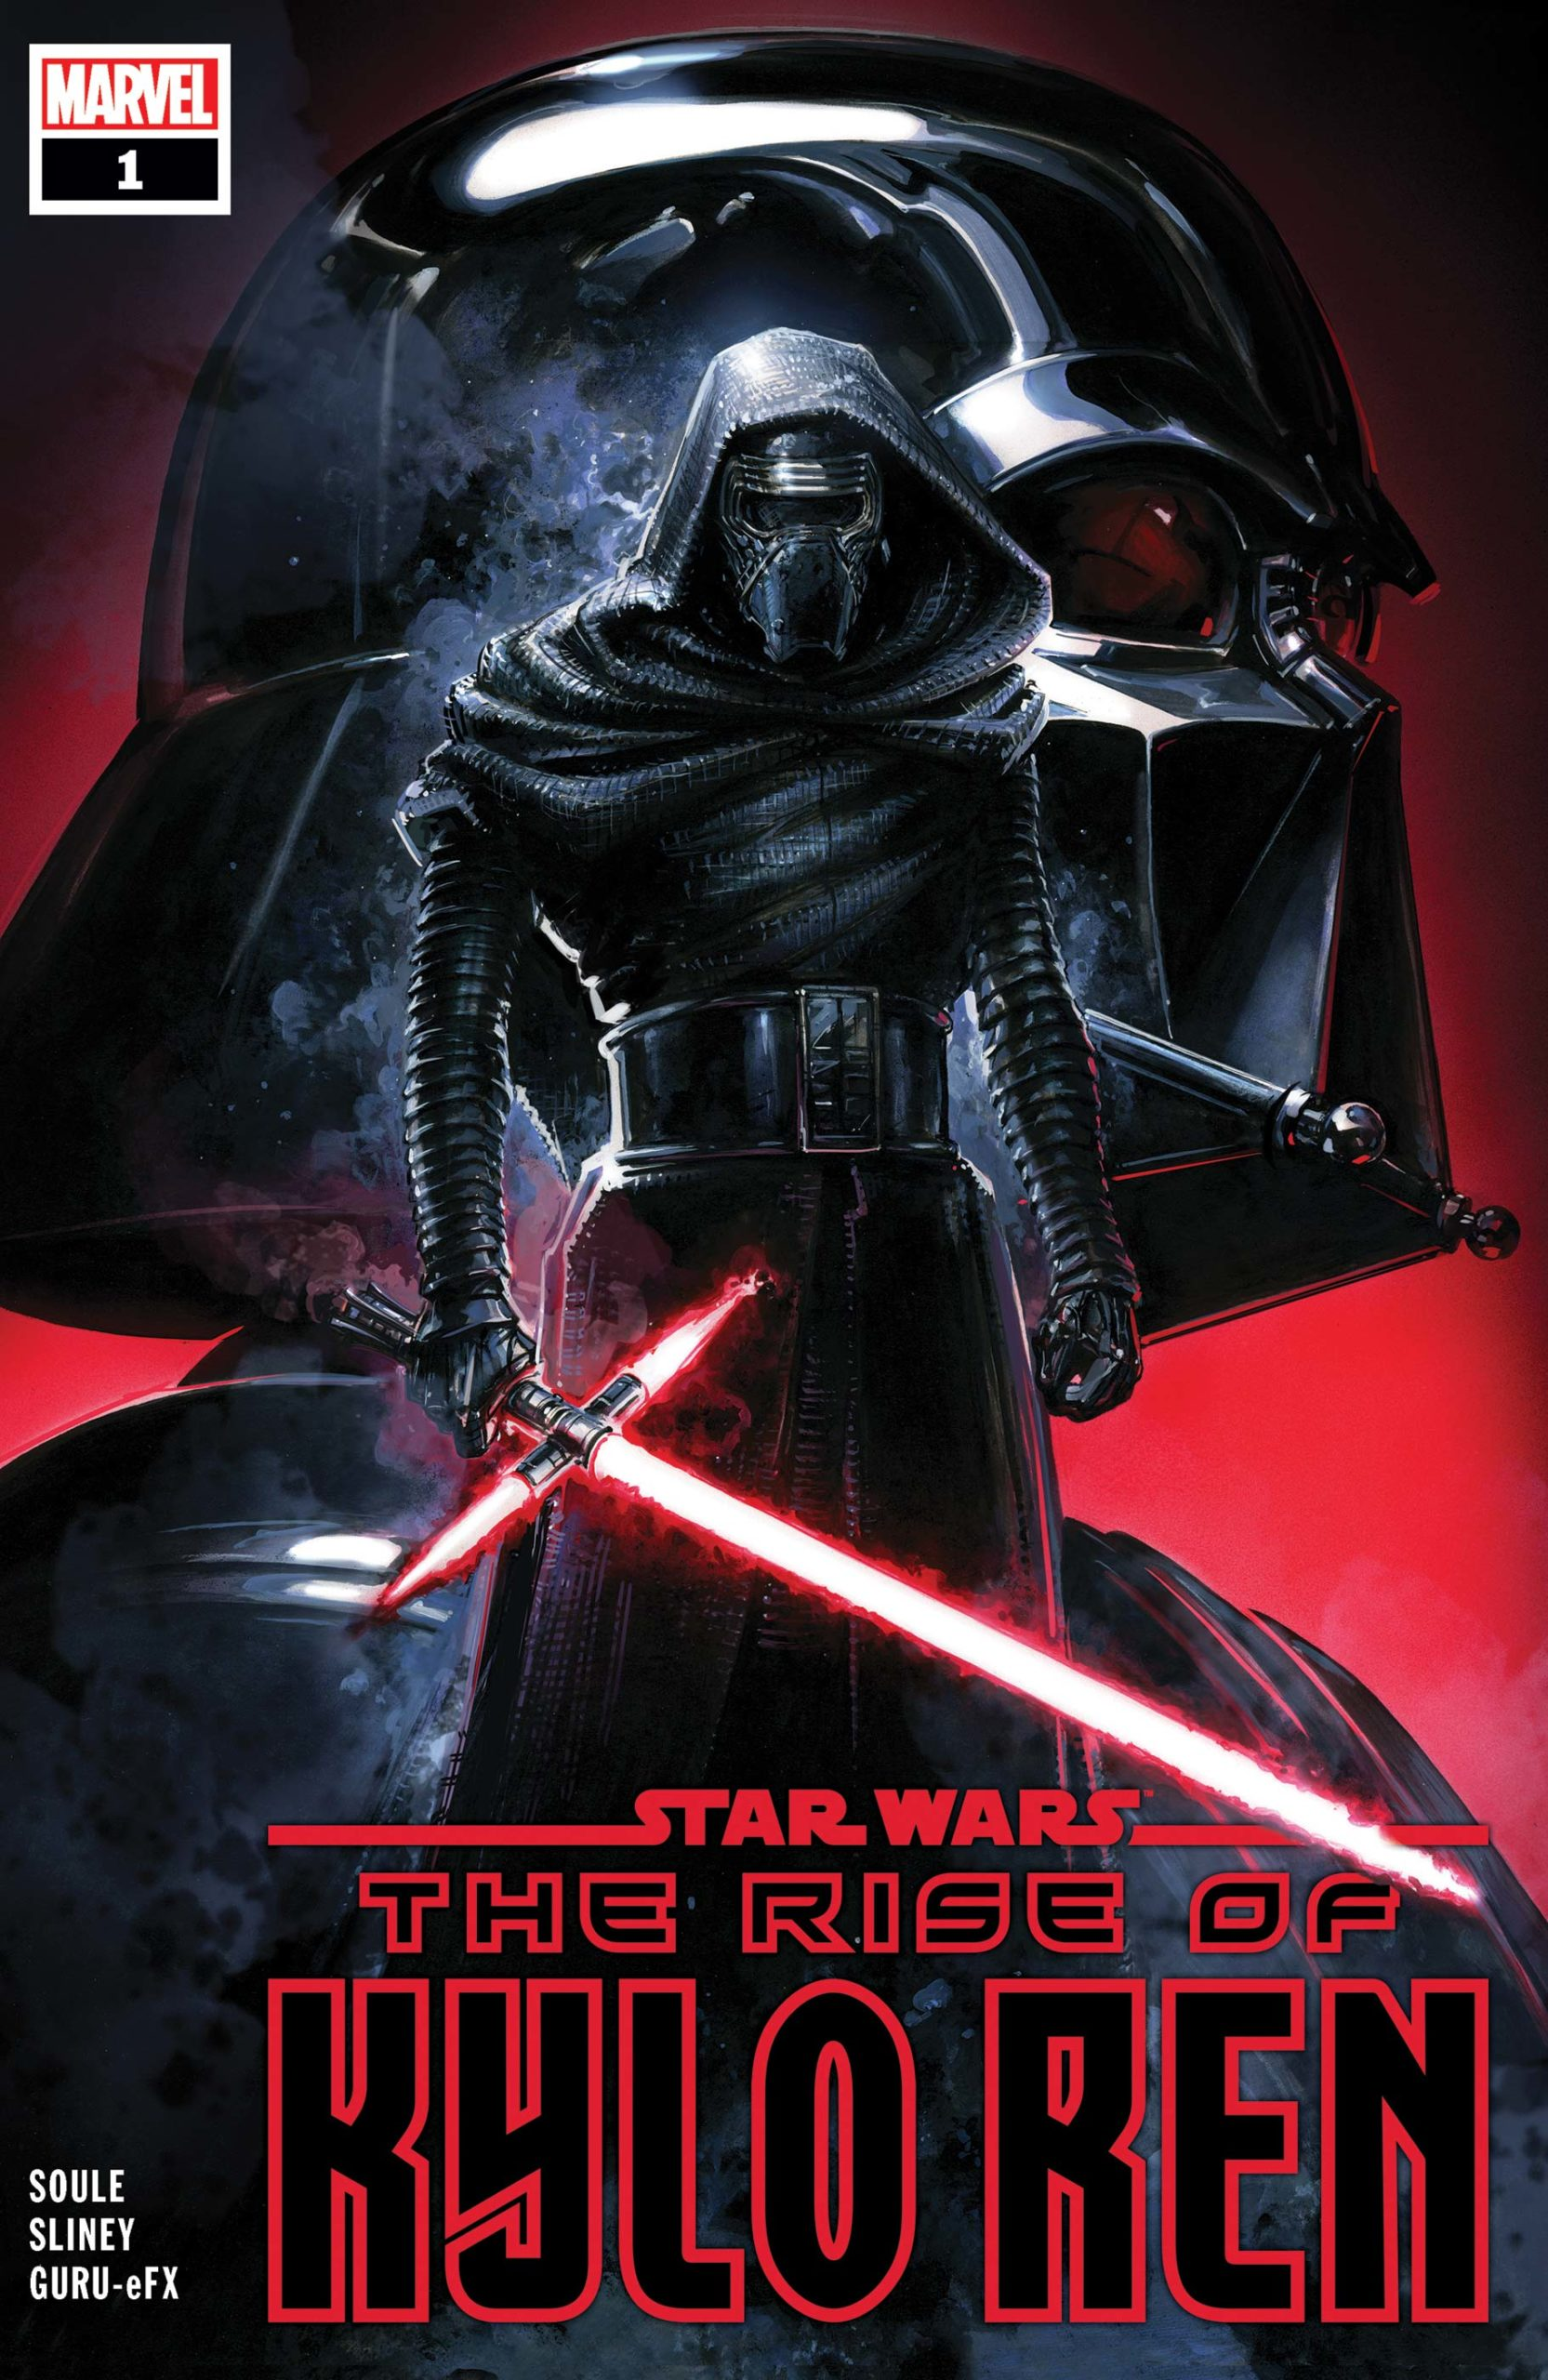 Star Wars: The Rise of Kylo Ren #1